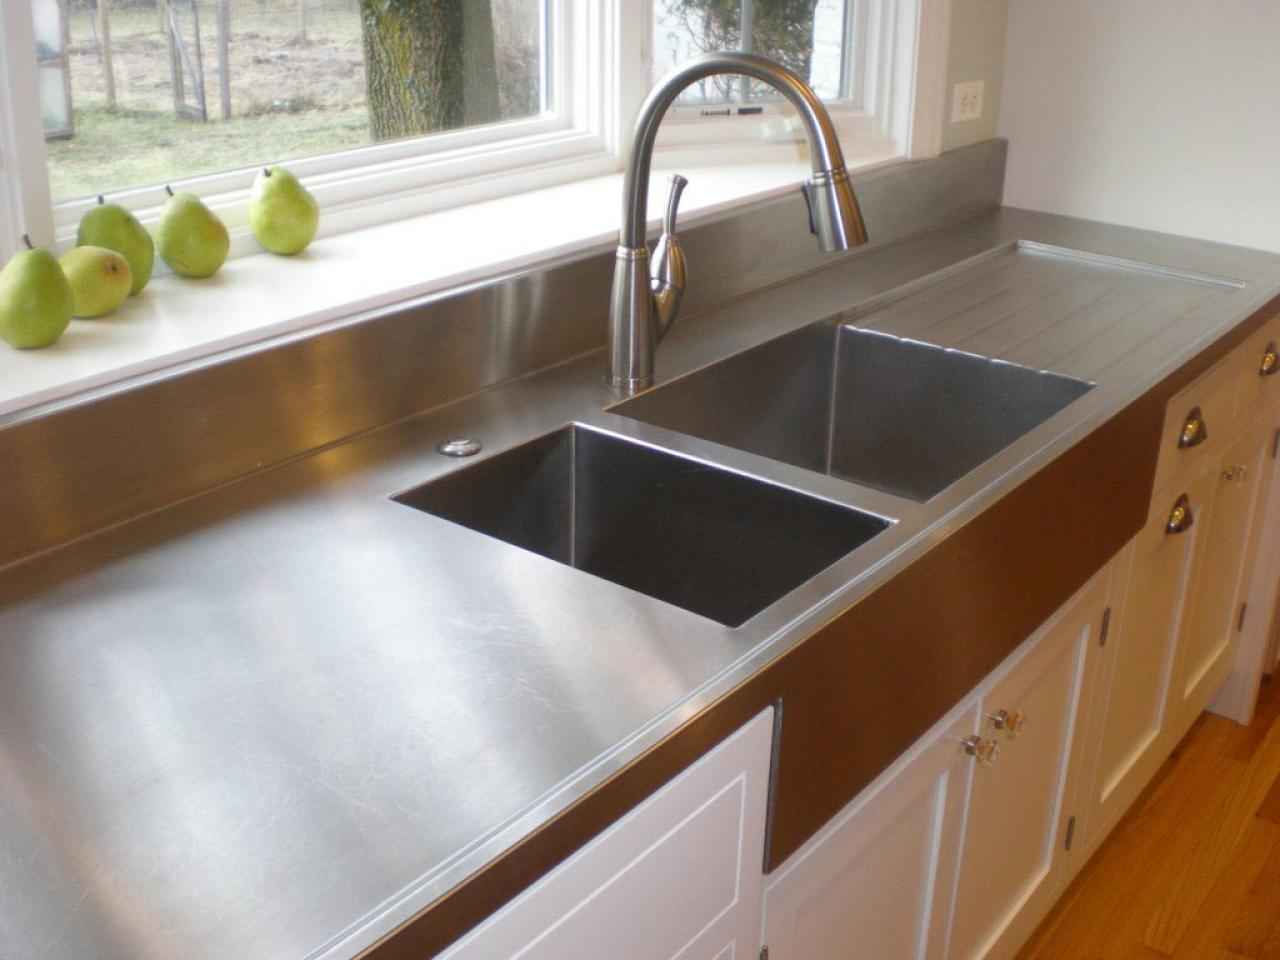 Choosing countertops stainless steel diy for Kitchen countertops